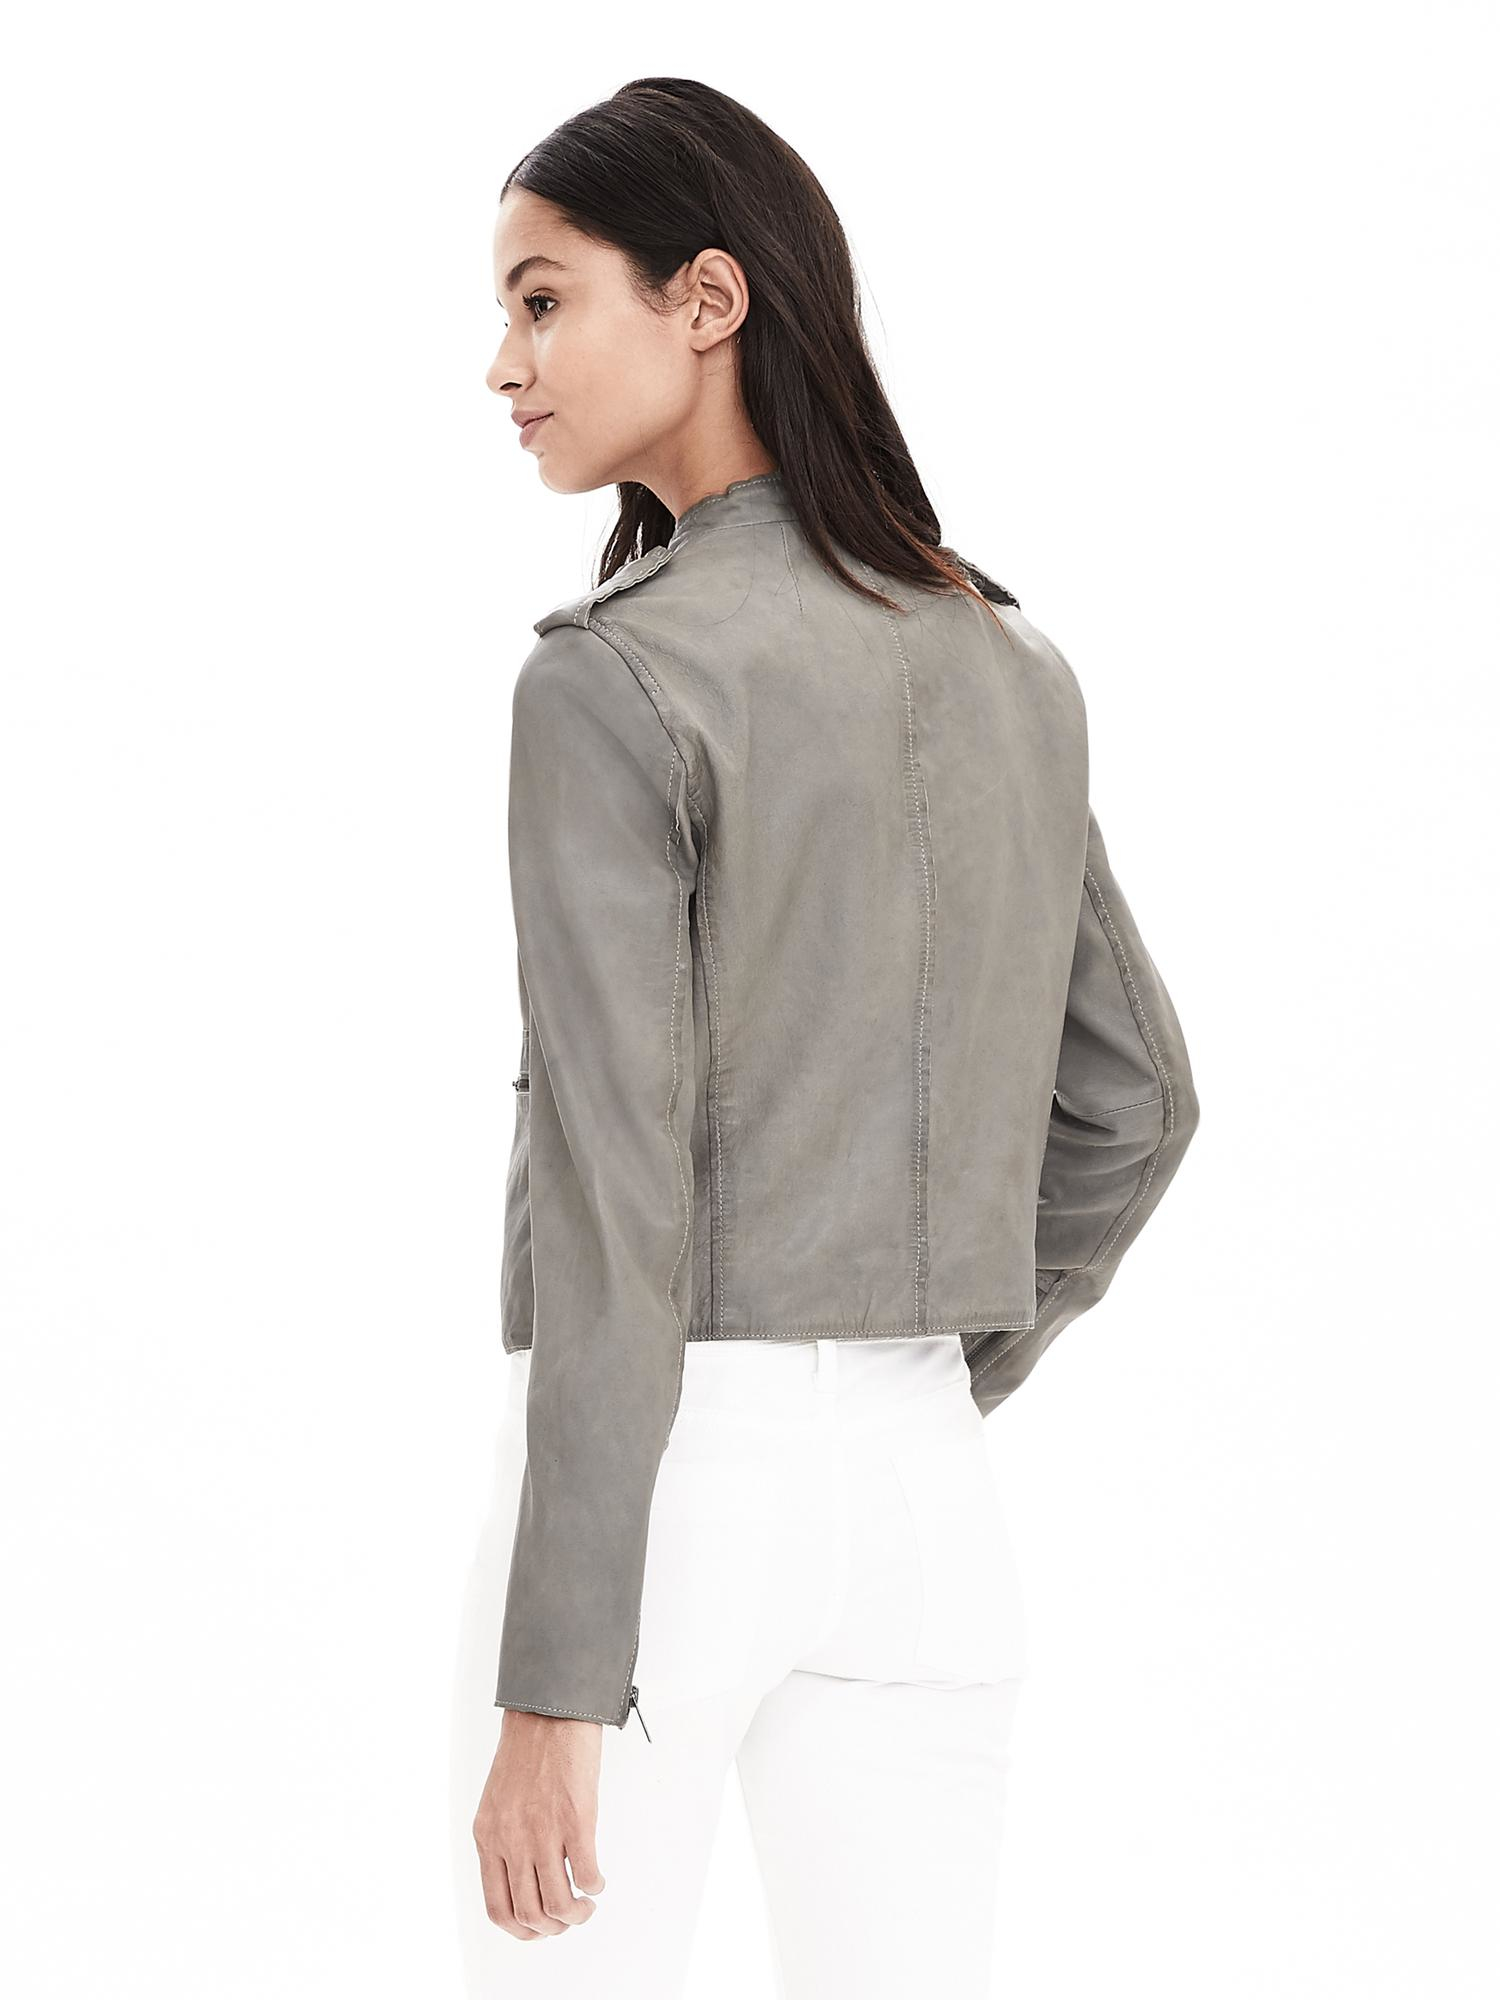 Lyst Banana Republic Gray Leather Moto Jacket In Gray